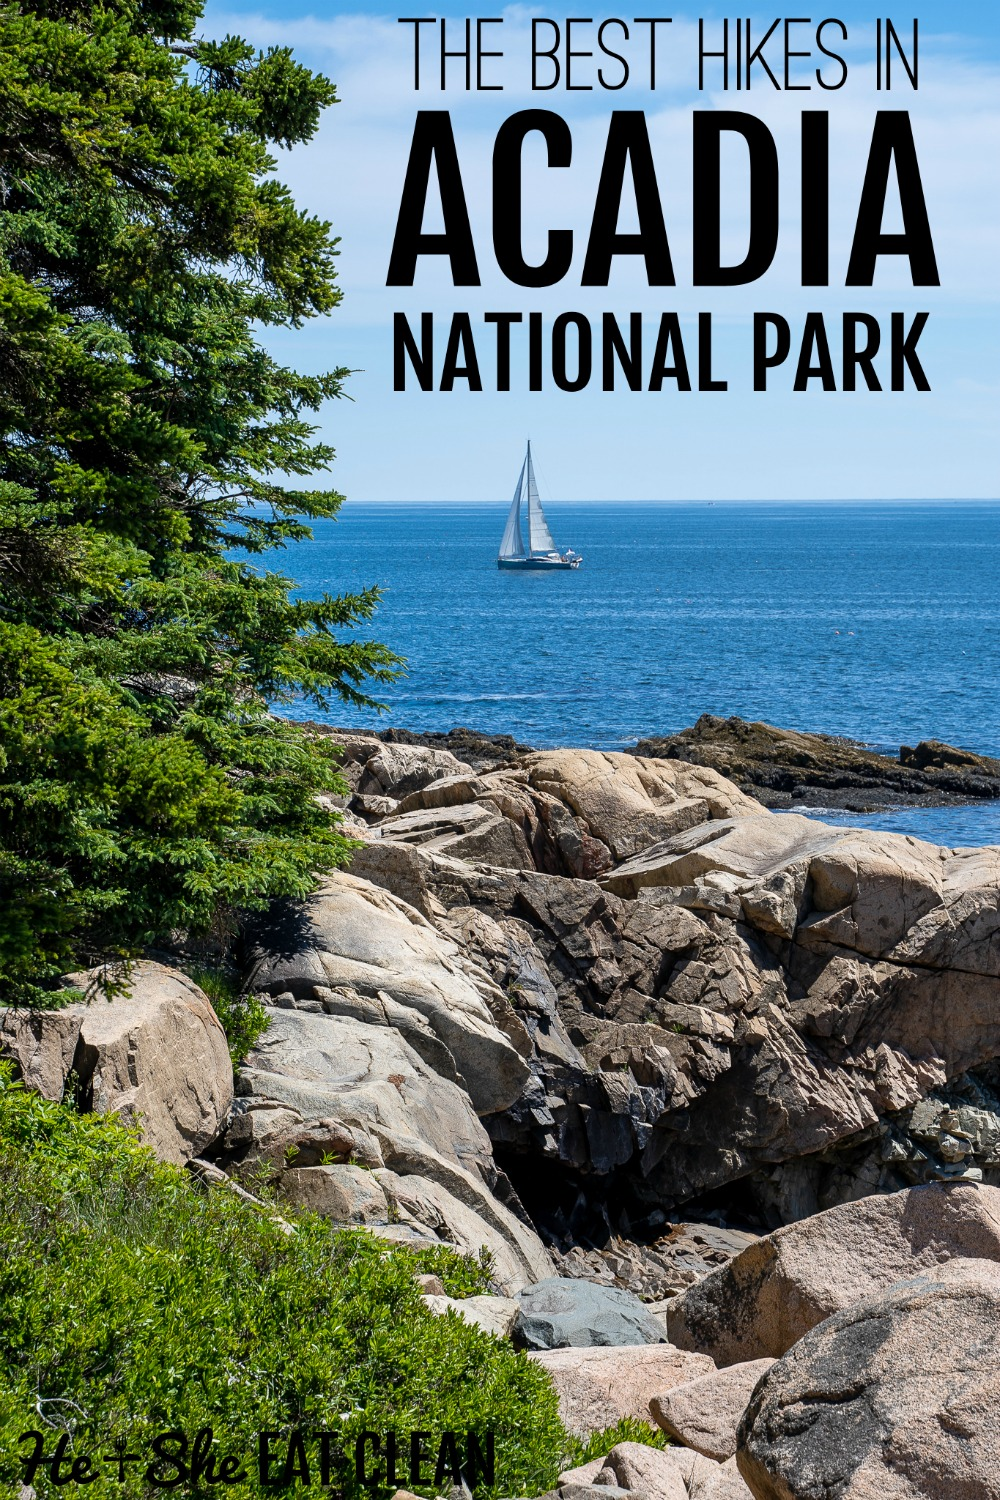 landscape photo of the rocky shoreline of the ocean with a sailboat in the distance. Text reads best hikes in Acadia National Park